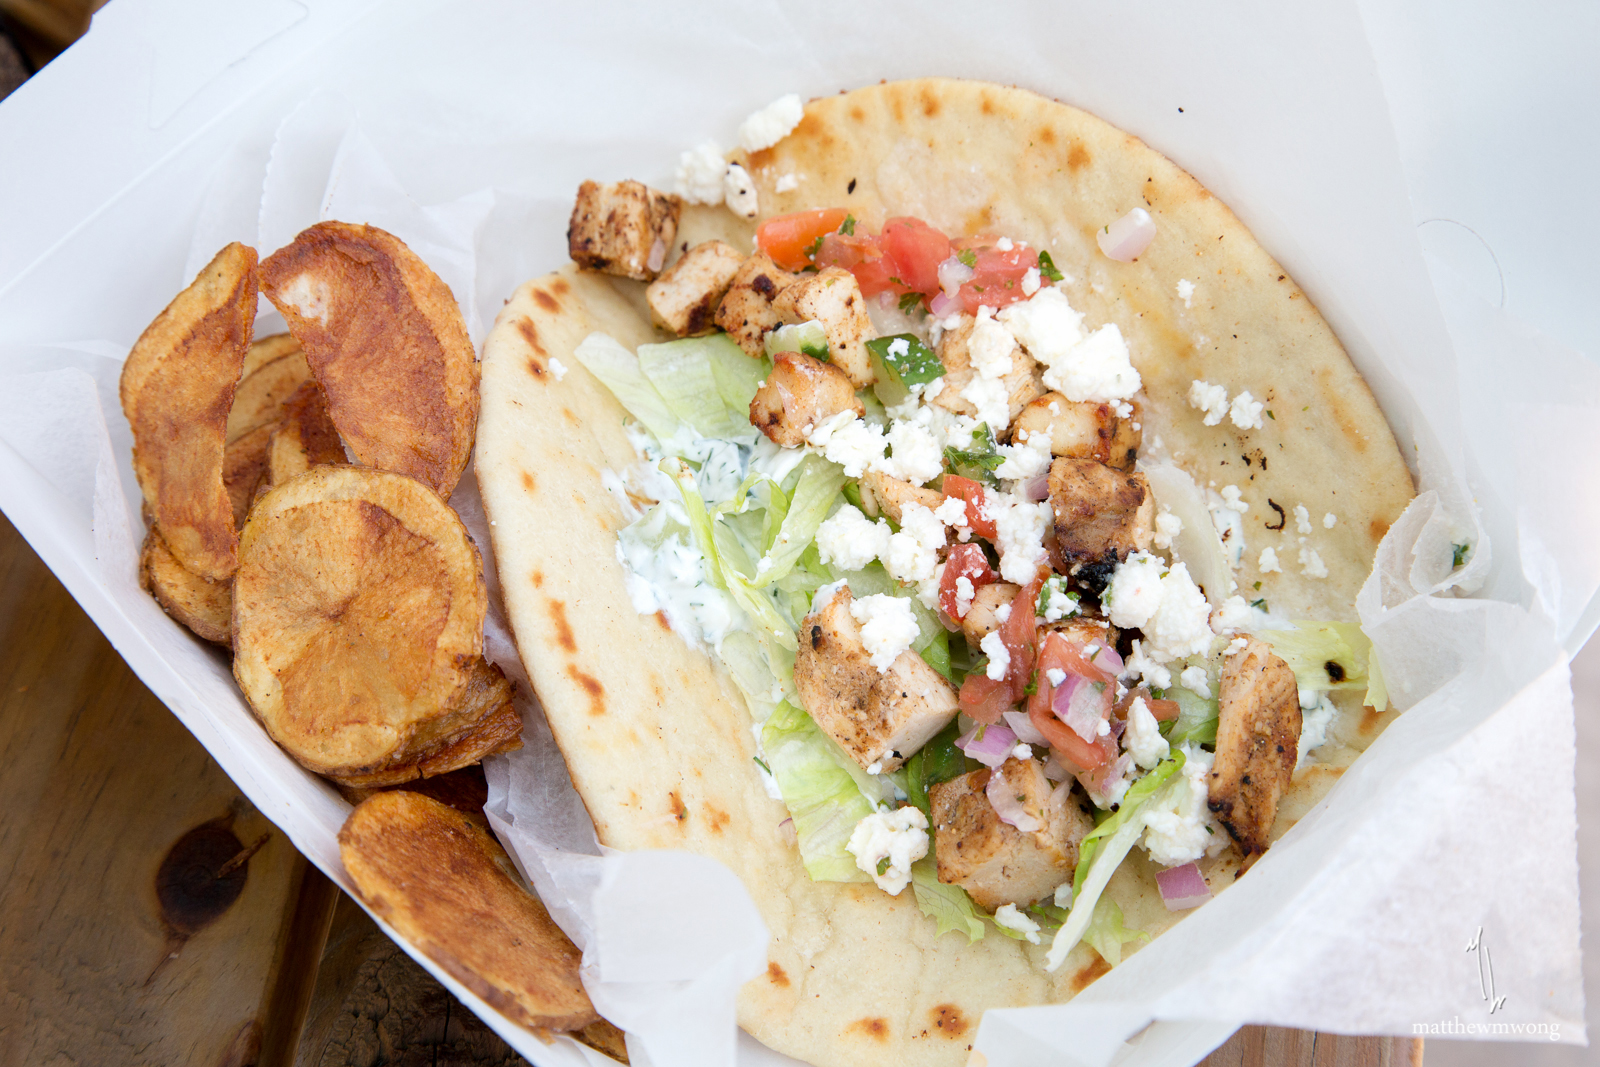 Chicken Shwarma, tzataziki, marinated grilled chicken breast, mediterranean salsa, lettuce, feta, on pita